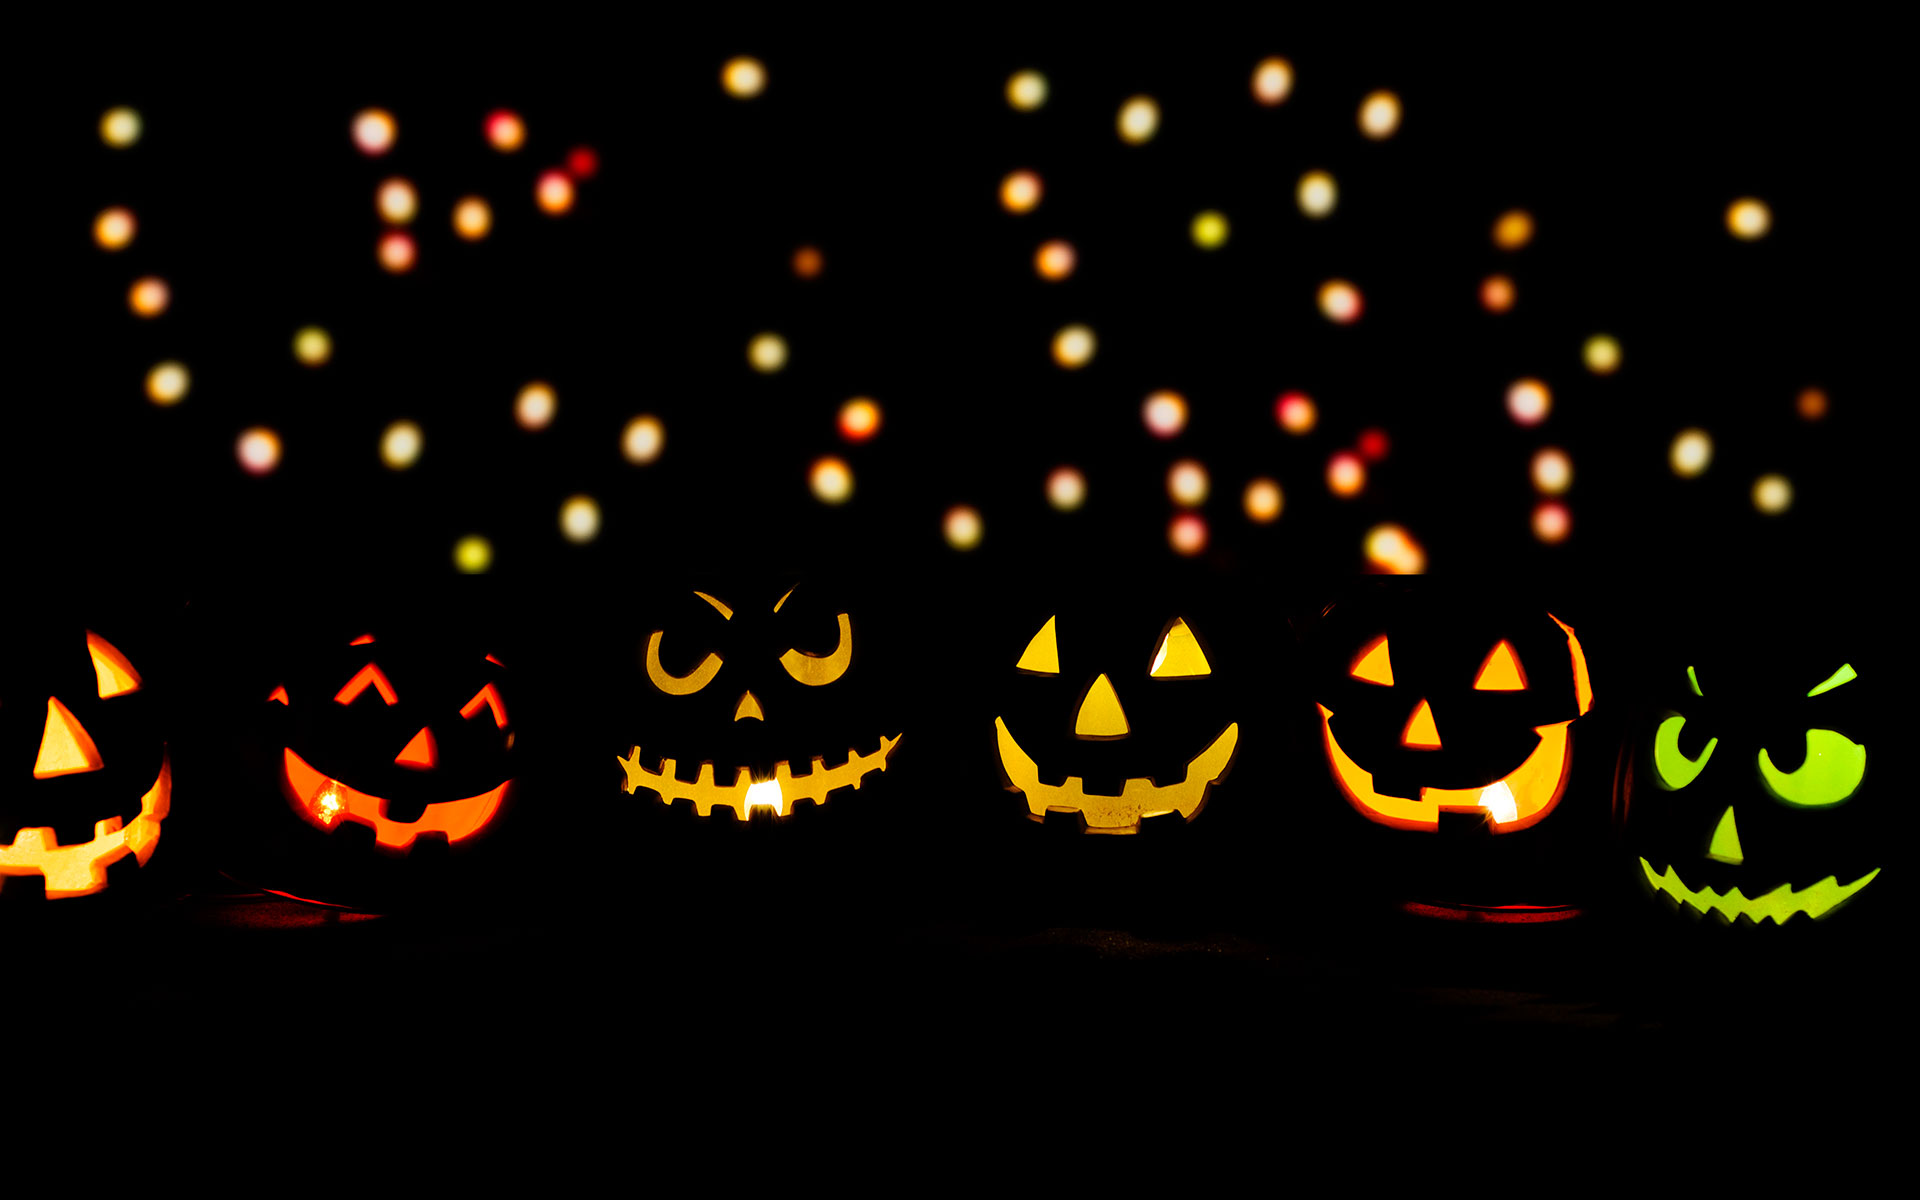 Happy Halloween 2015 Images Backgrounds Wallpapers Ideas Photos 1920x1200